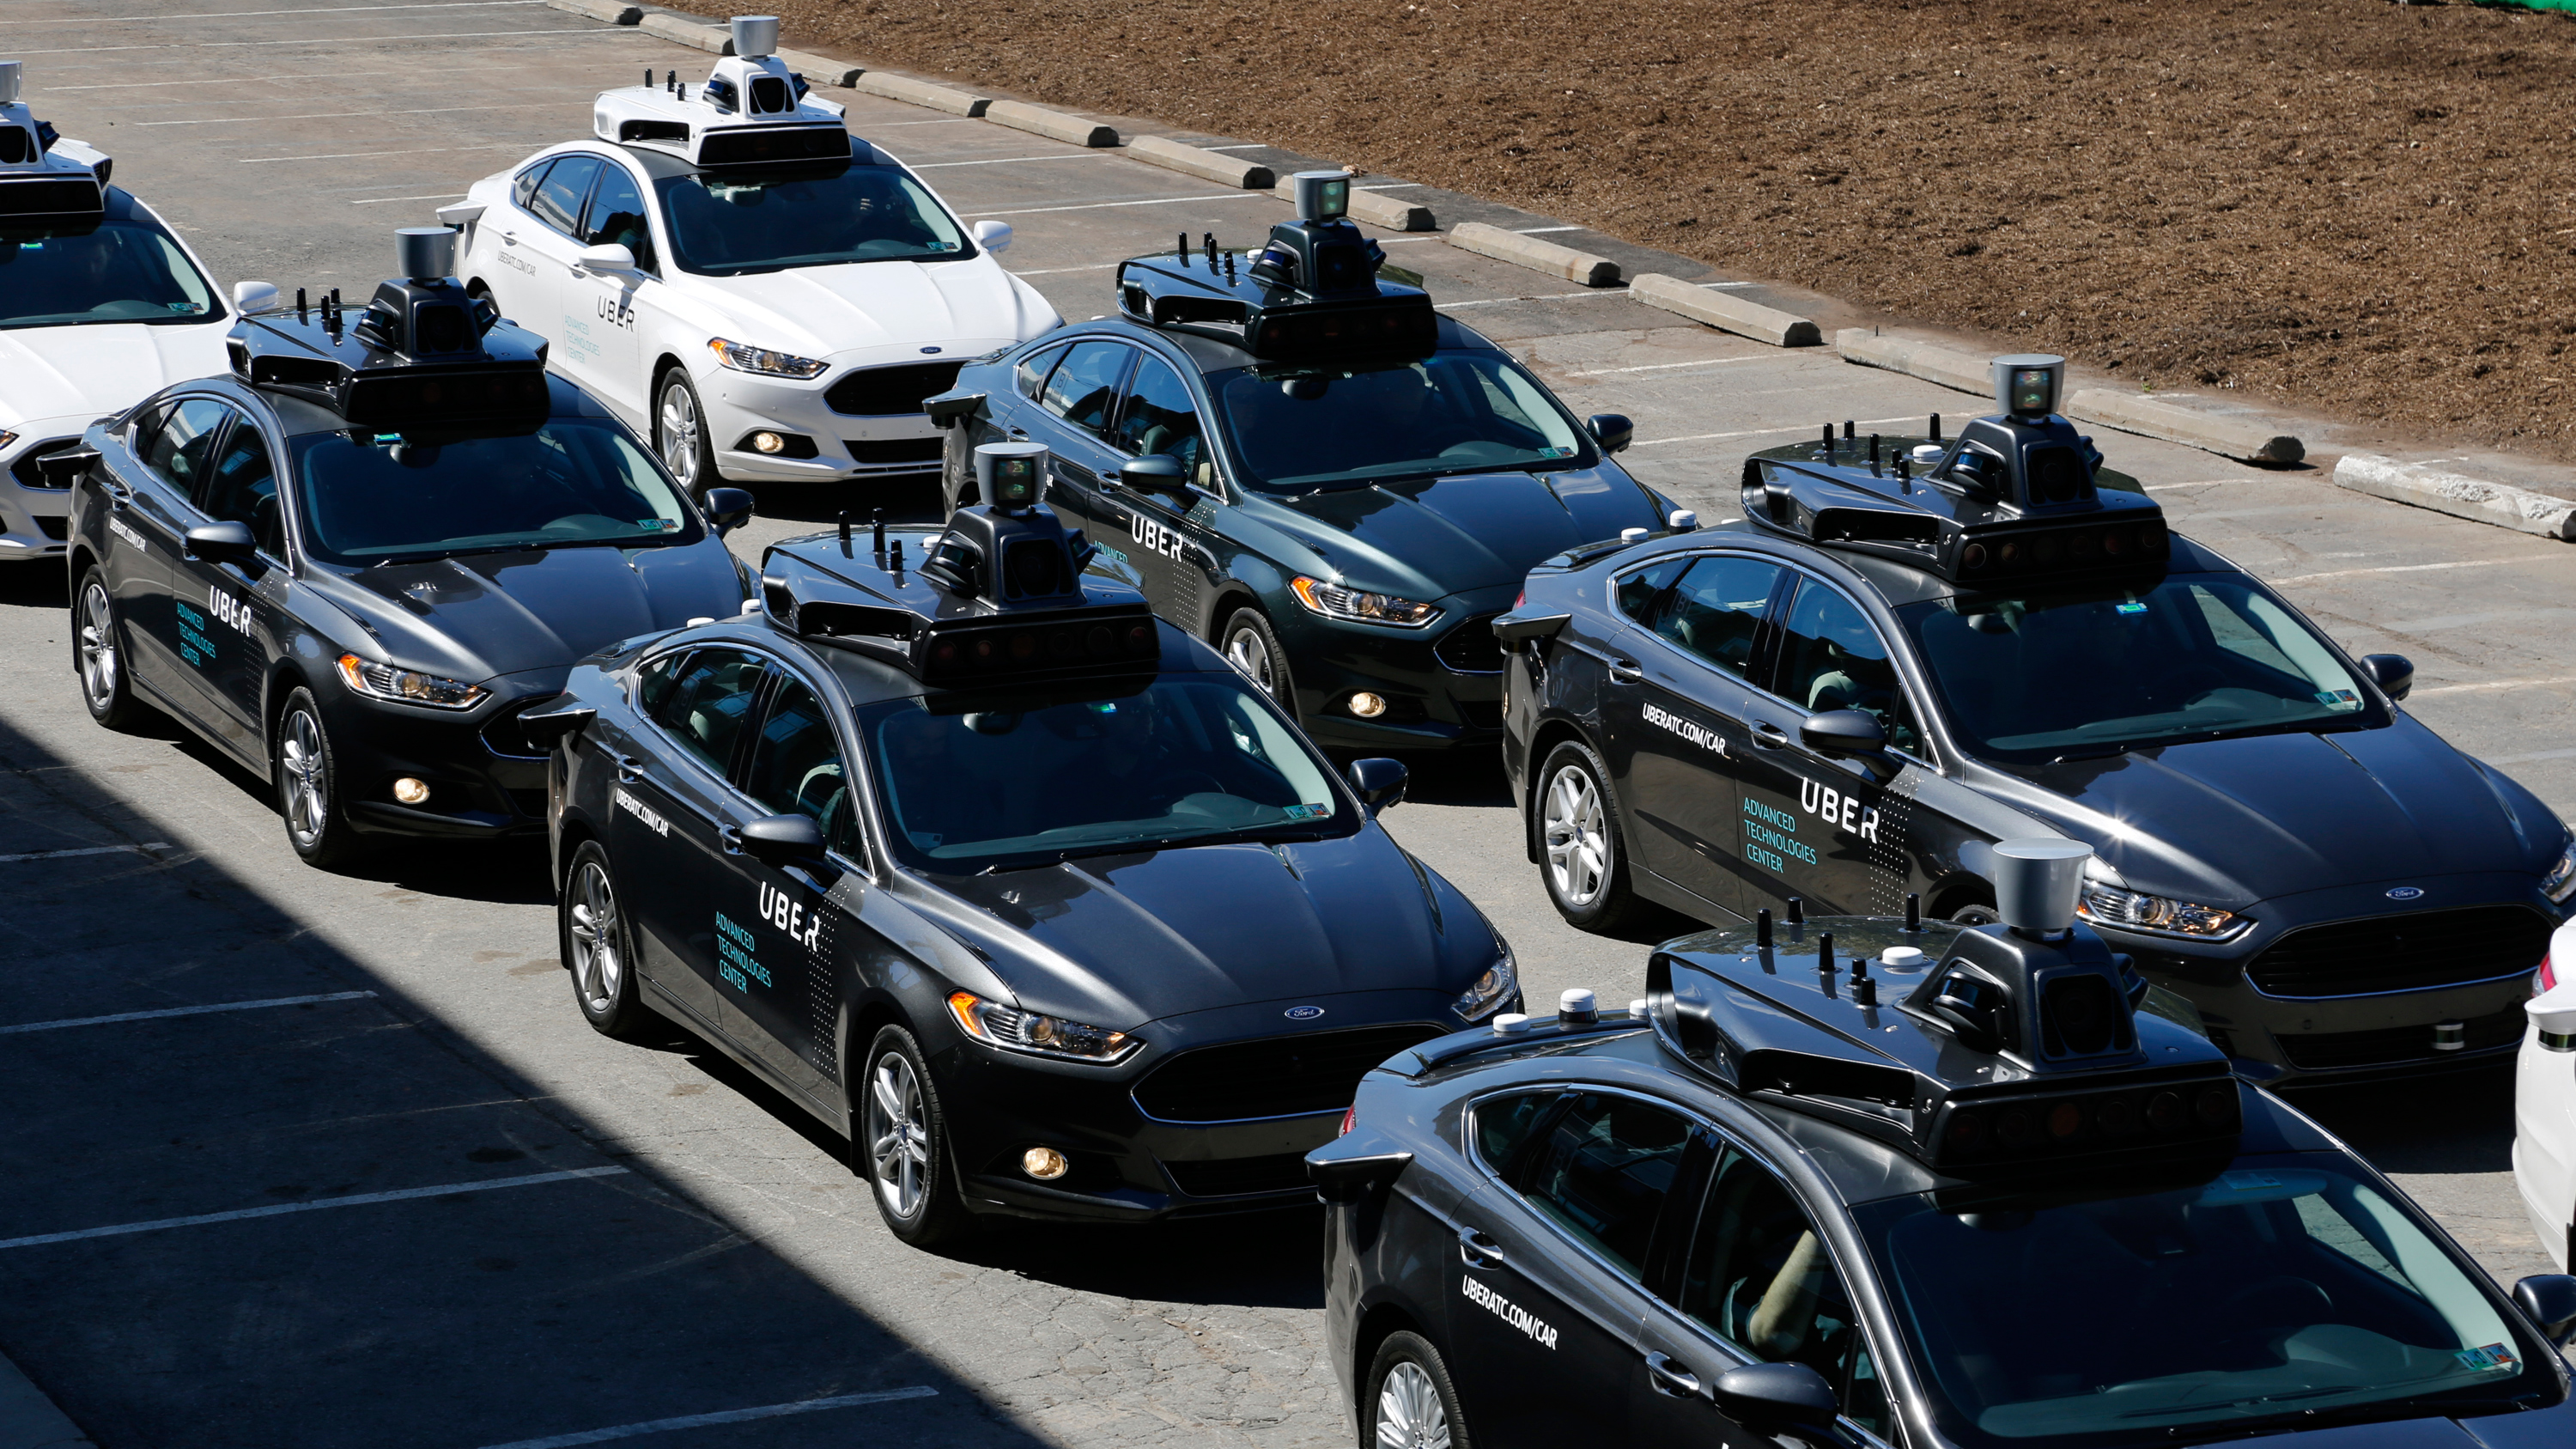 a speech outline on self driving cars Enrolling in a self-defense course to protect  100 good persuasive speech topics | persuasive speech topics & ideas  50 controversial persuasive speech topics.